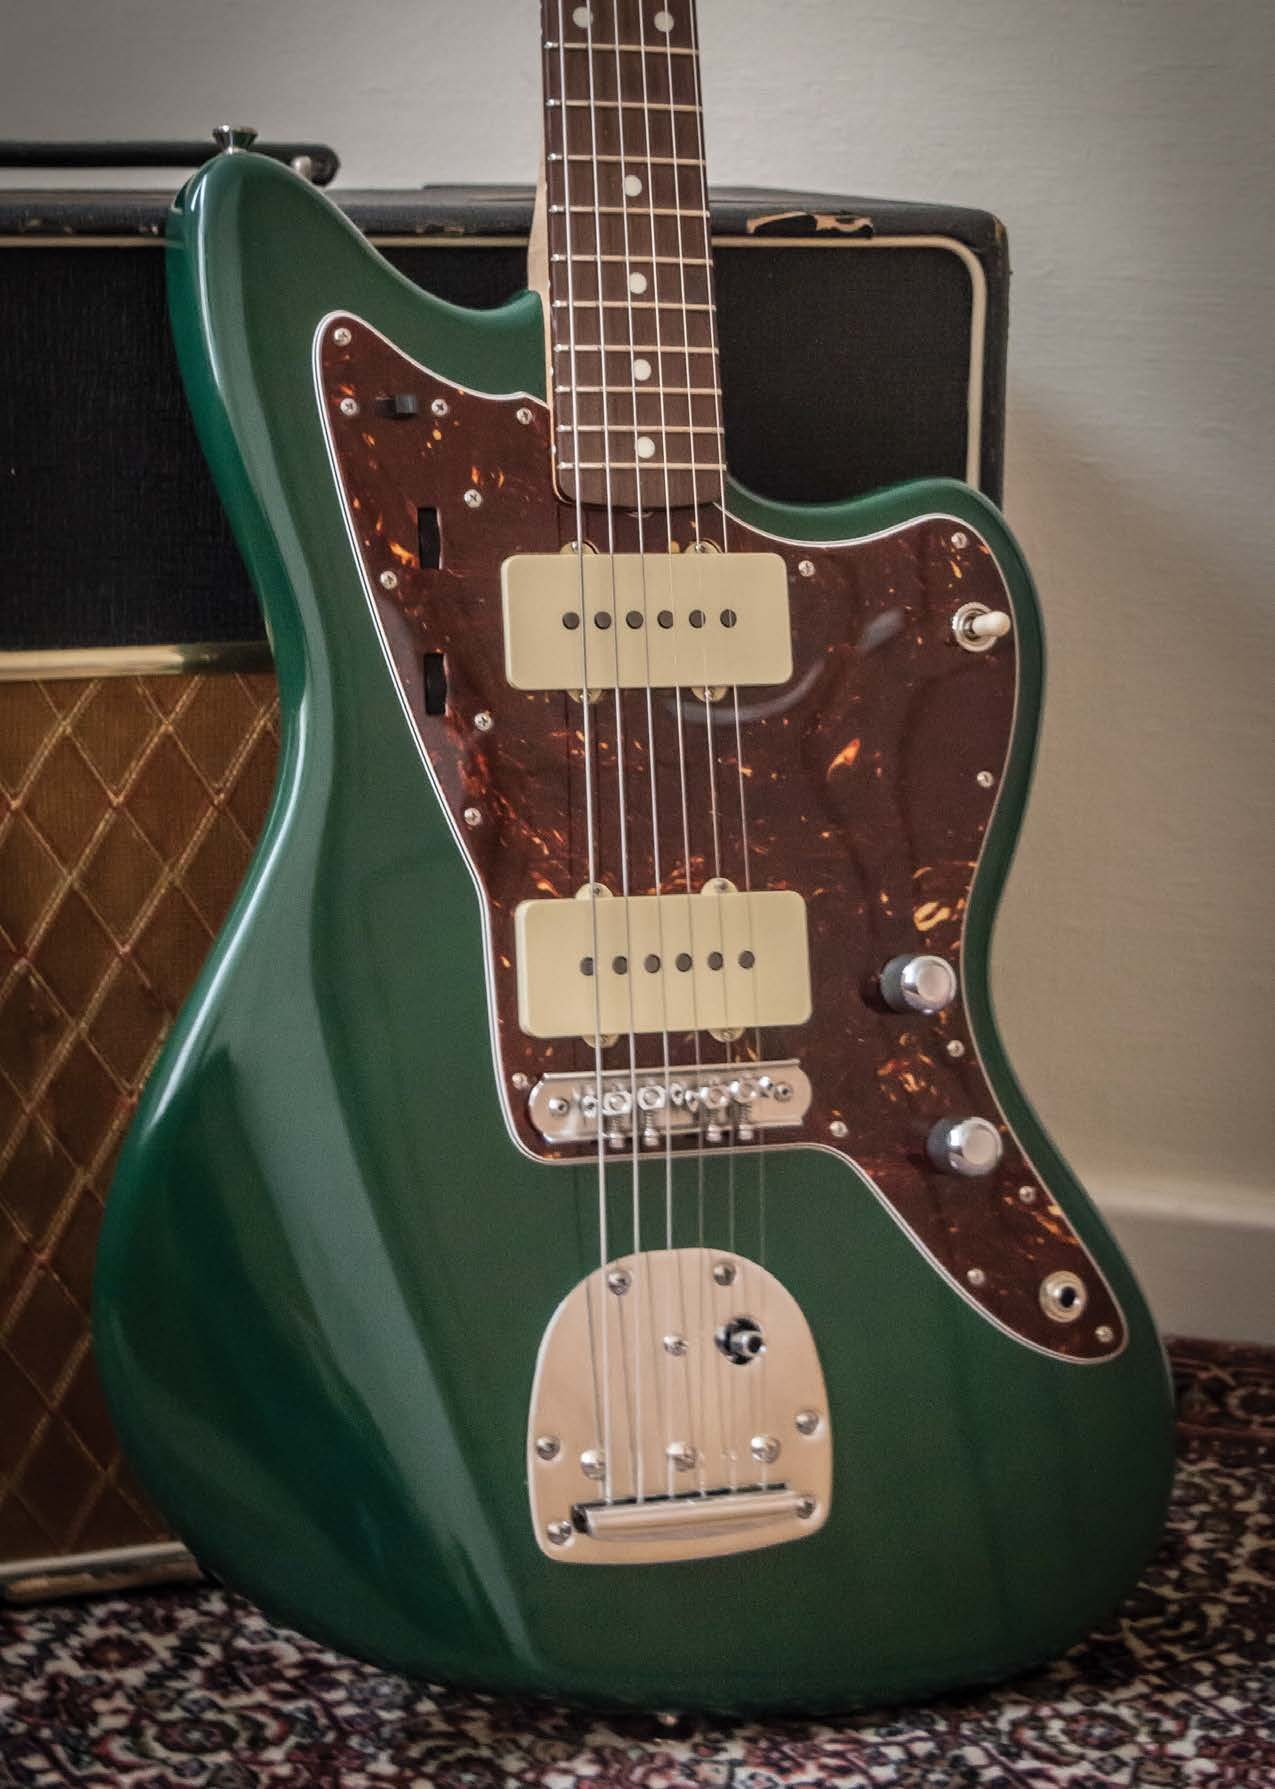 Jazzmasters are nothing if not eccentric beasts, and that presents certain  unique challenges if you want to mod, repair or restore one of your own.